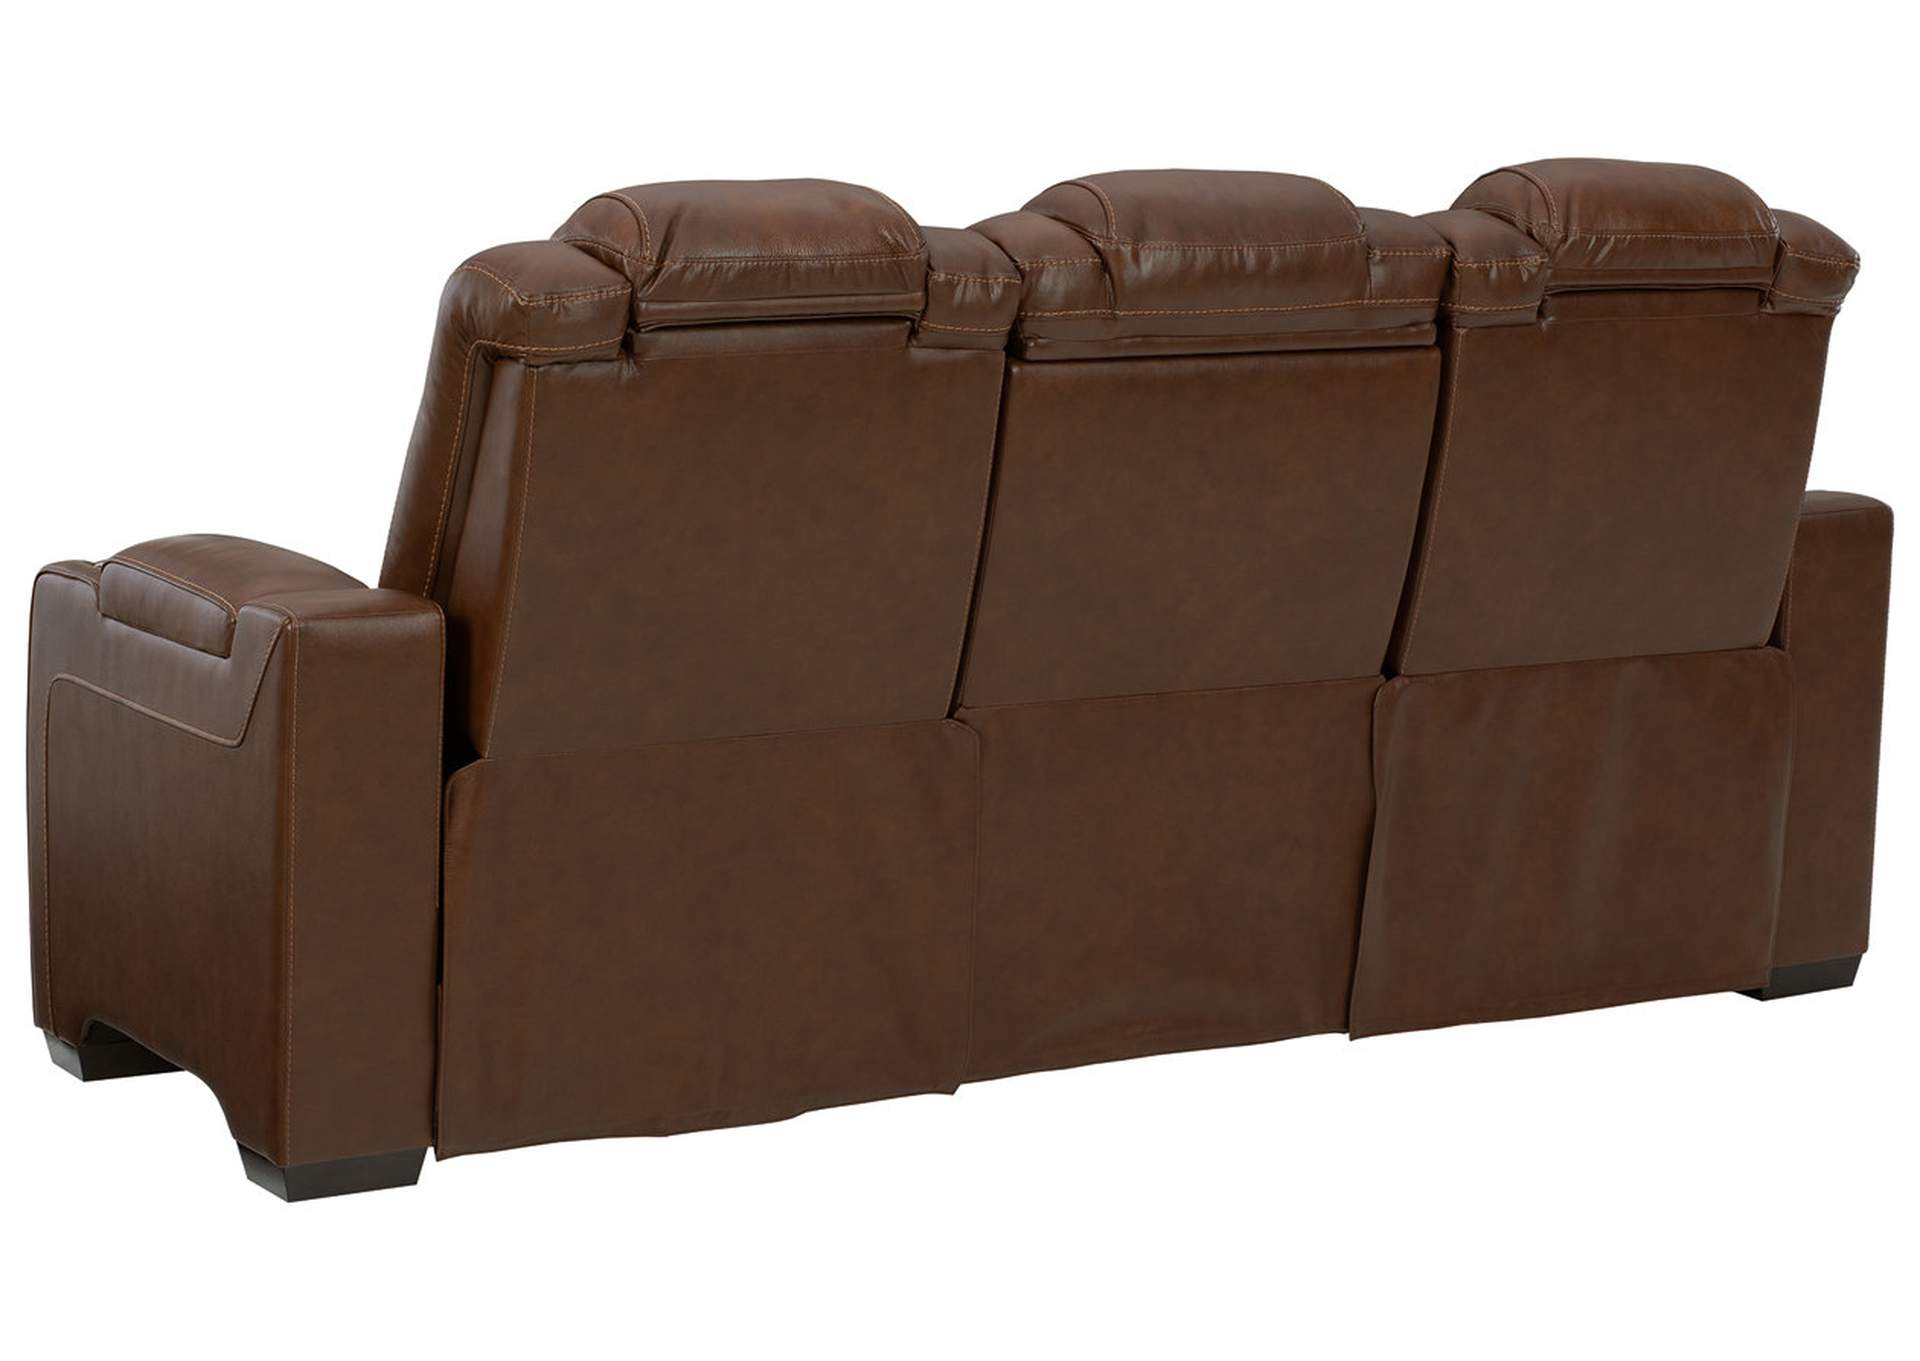 Backtrack Power Reclining Sofa,Signature Design By Ashley